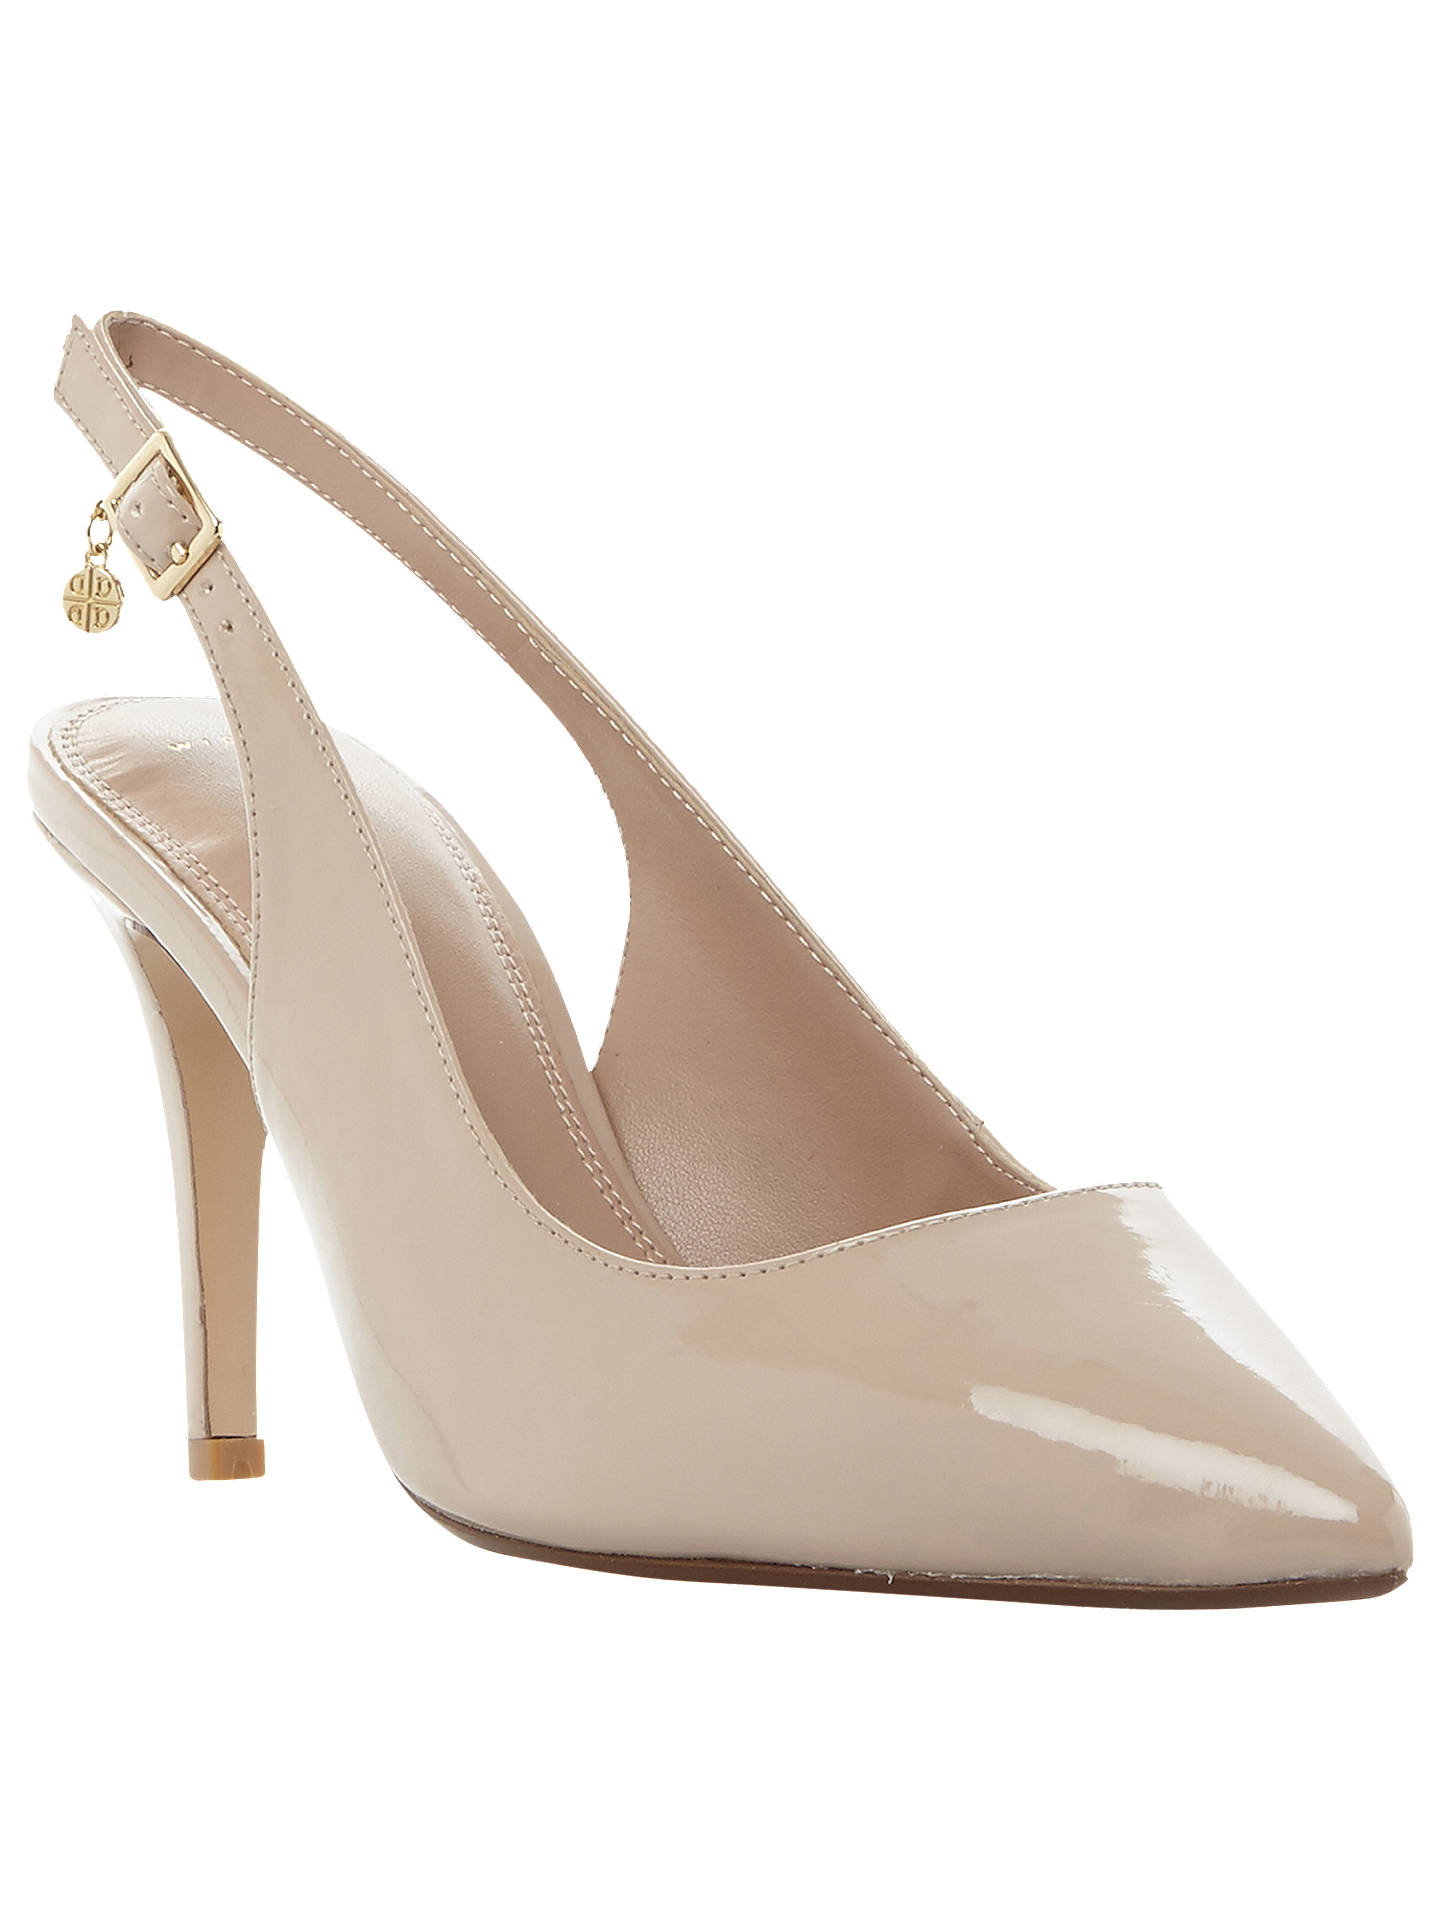 44ccee866a Buy Dune Wide Fit Cathy Slingback Stiletto Court Shoes, Nude, 5 Online at  johnlewis ...